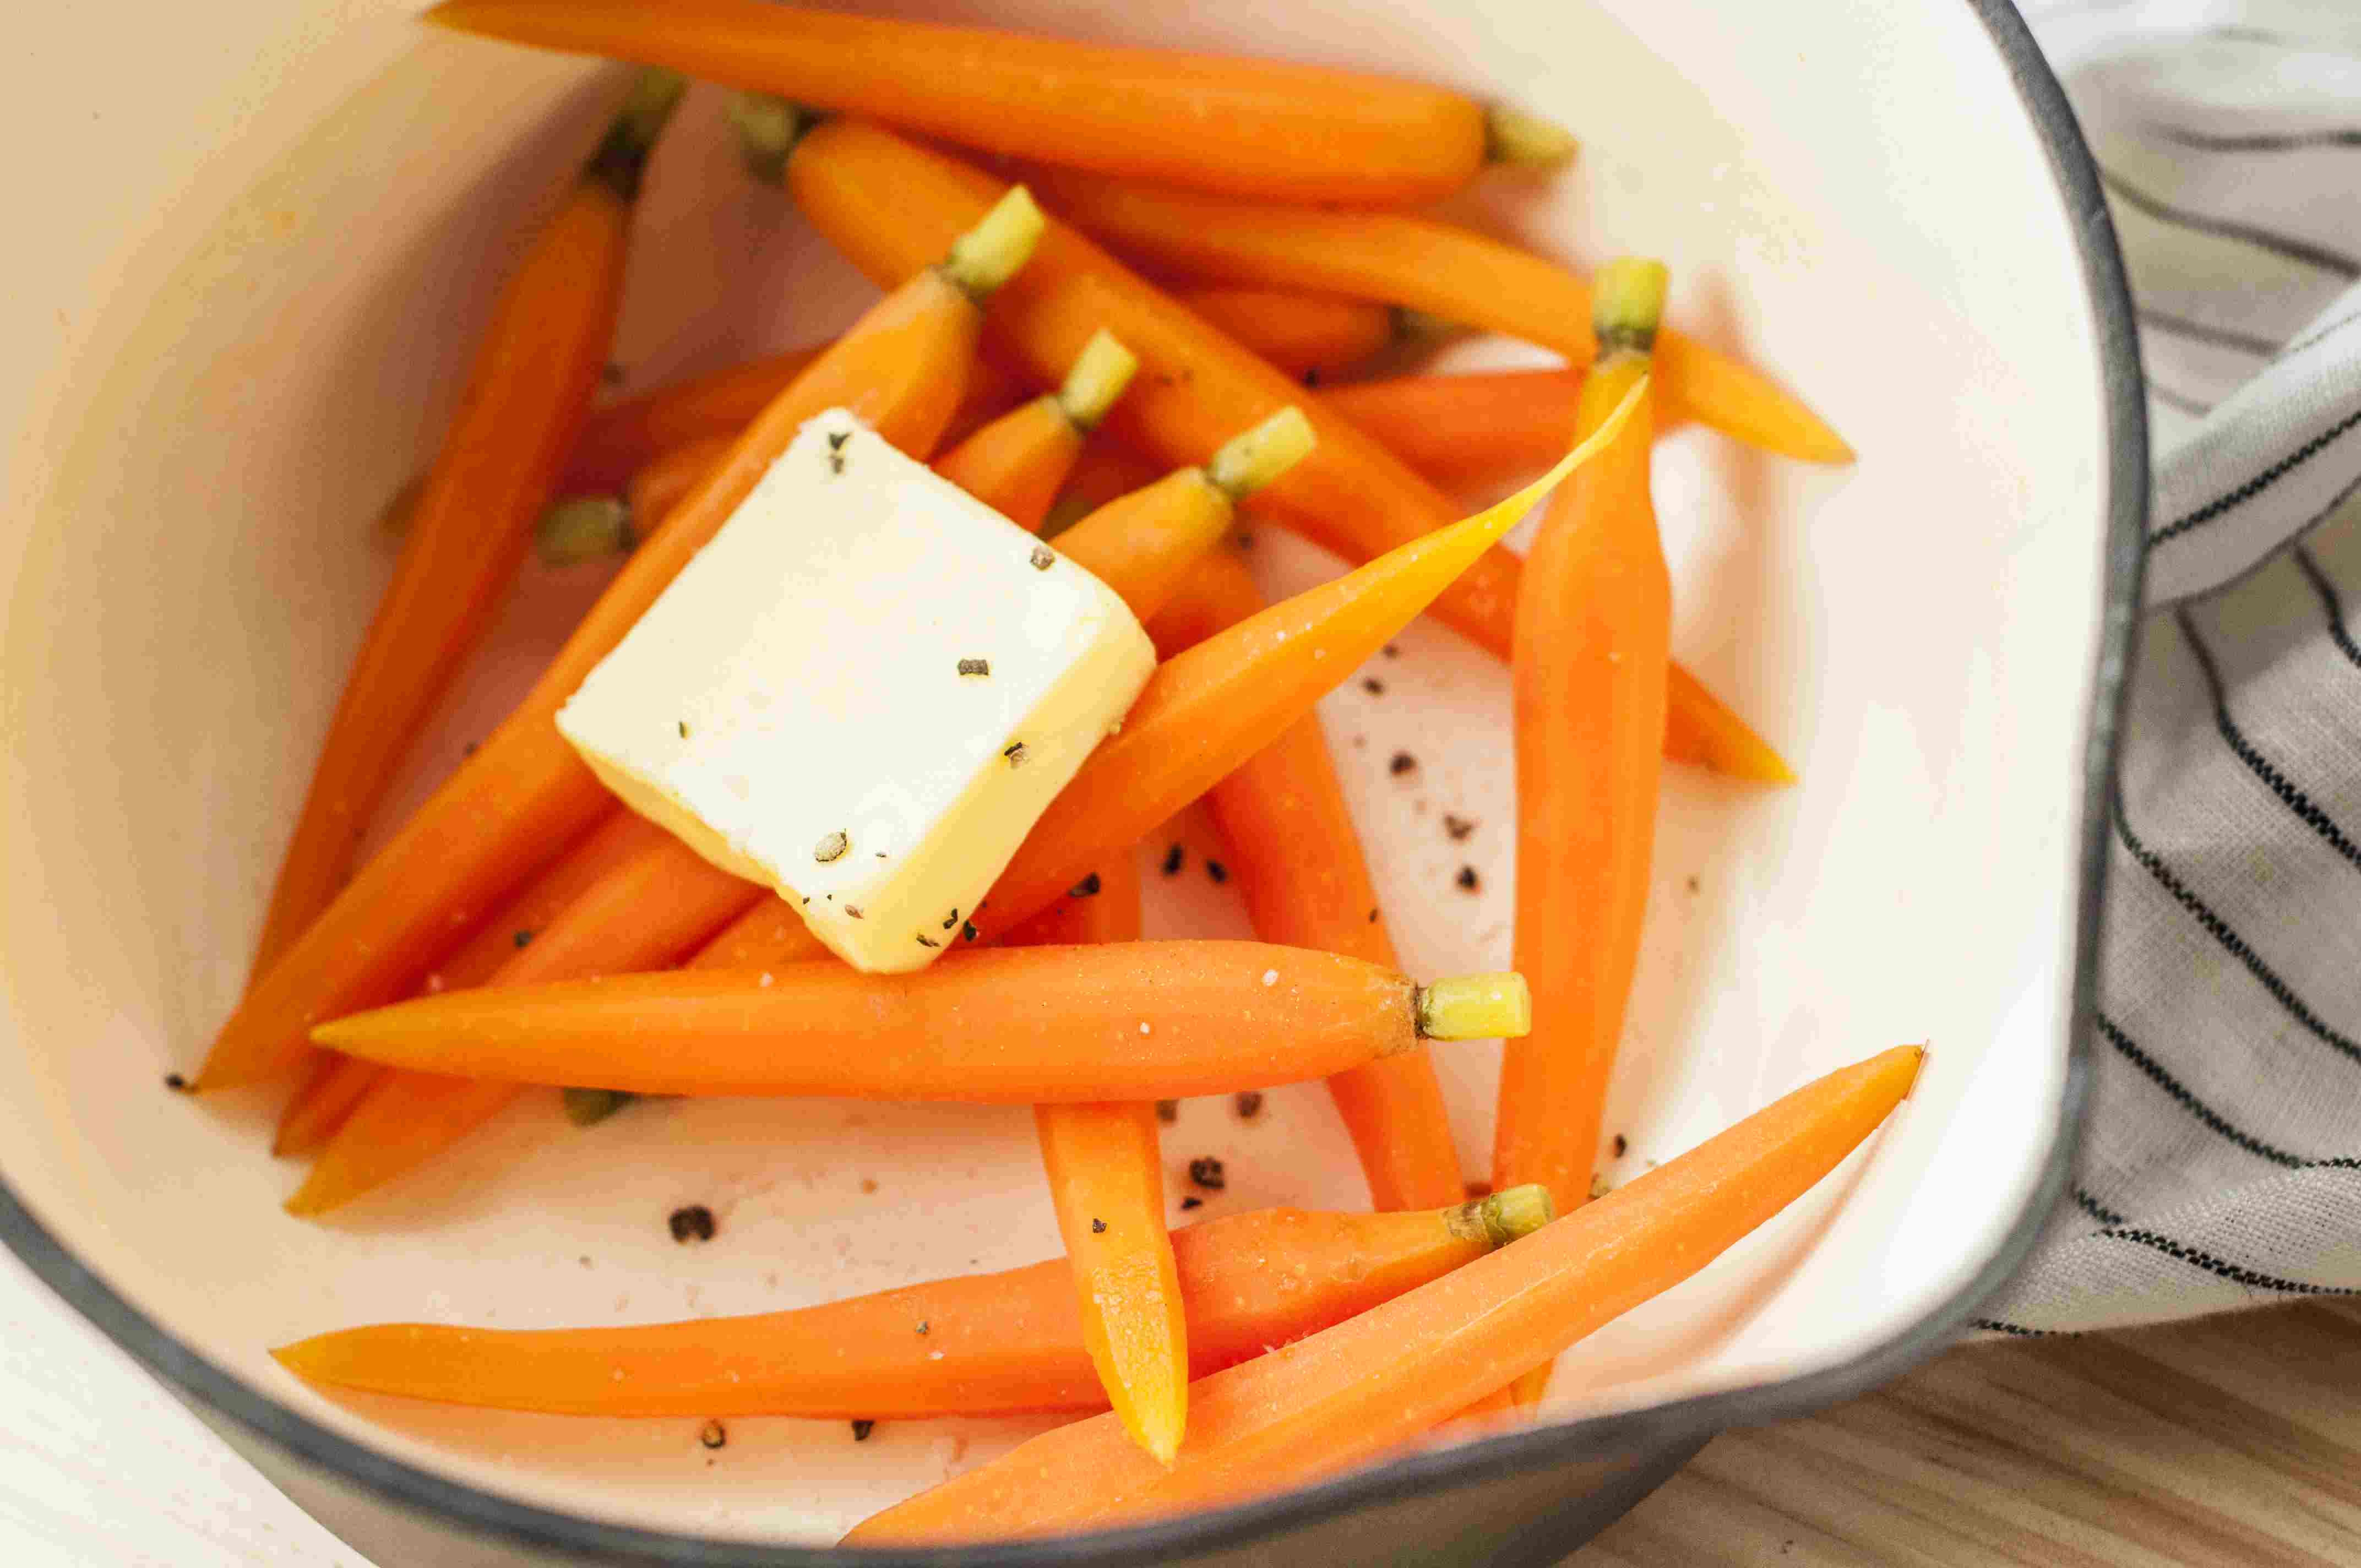 Drain carrots and add butter to saucepan